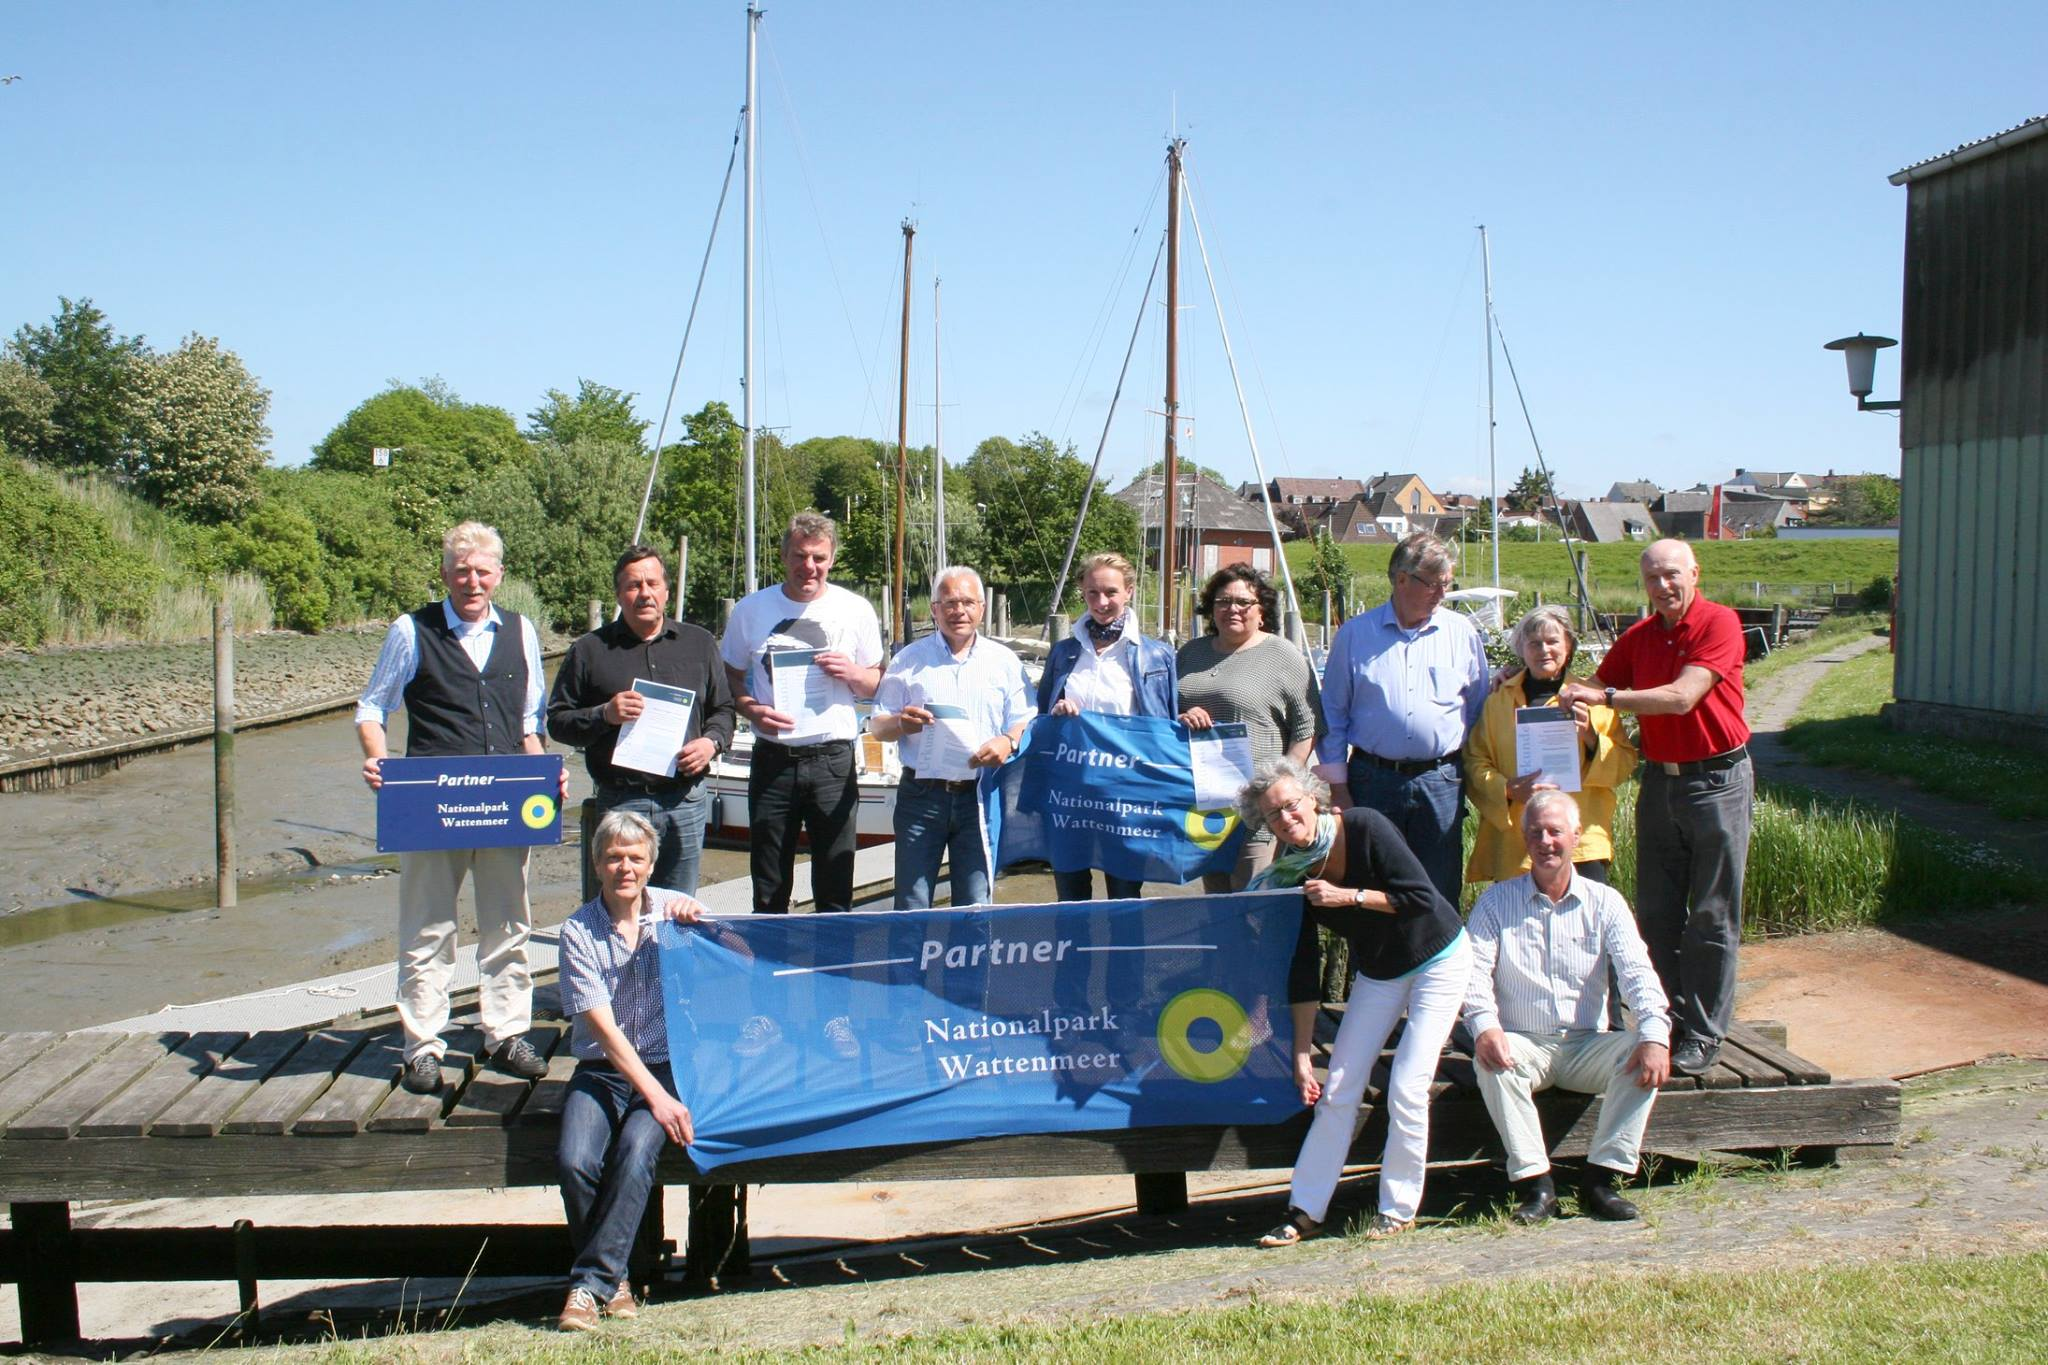 Nationalpark Wattenmeer Partner